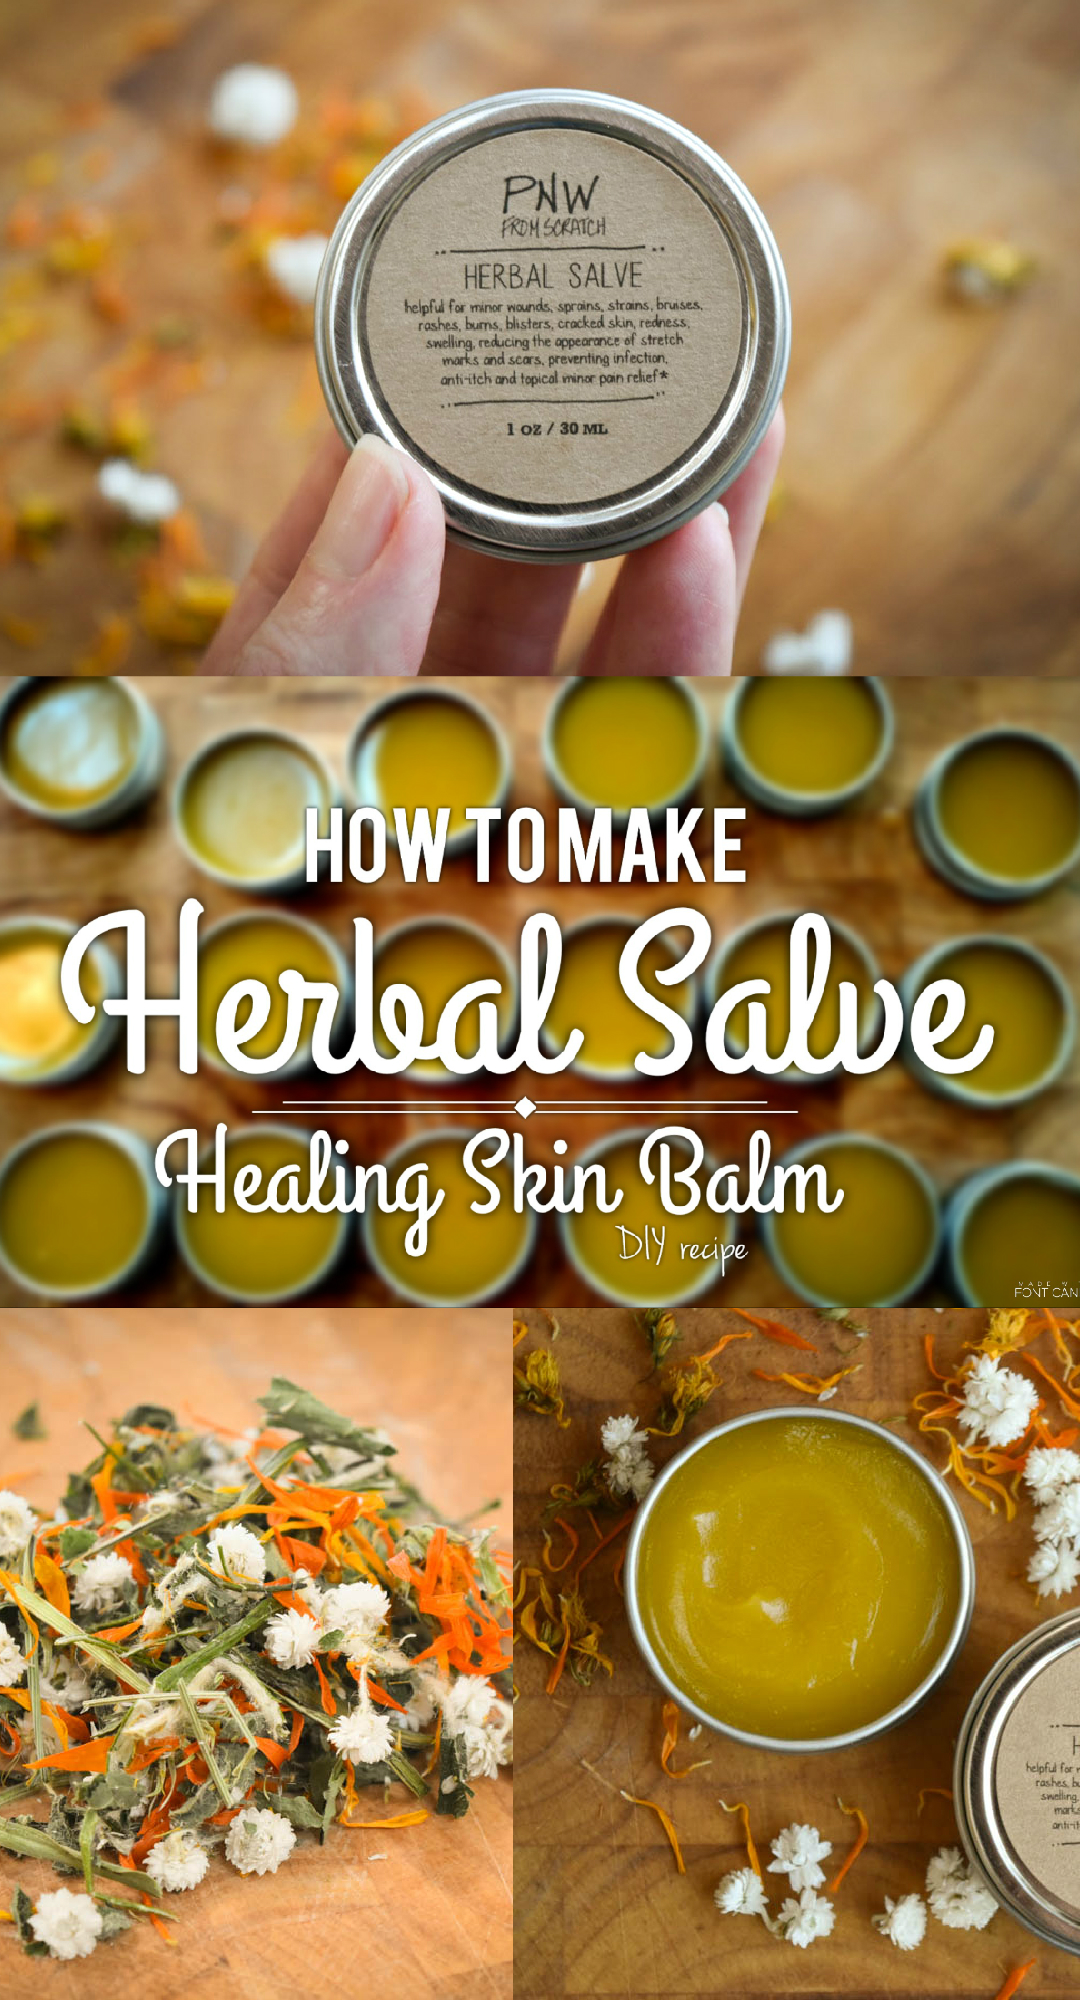 Herbal Salve – DIY Skin Balm Recipe